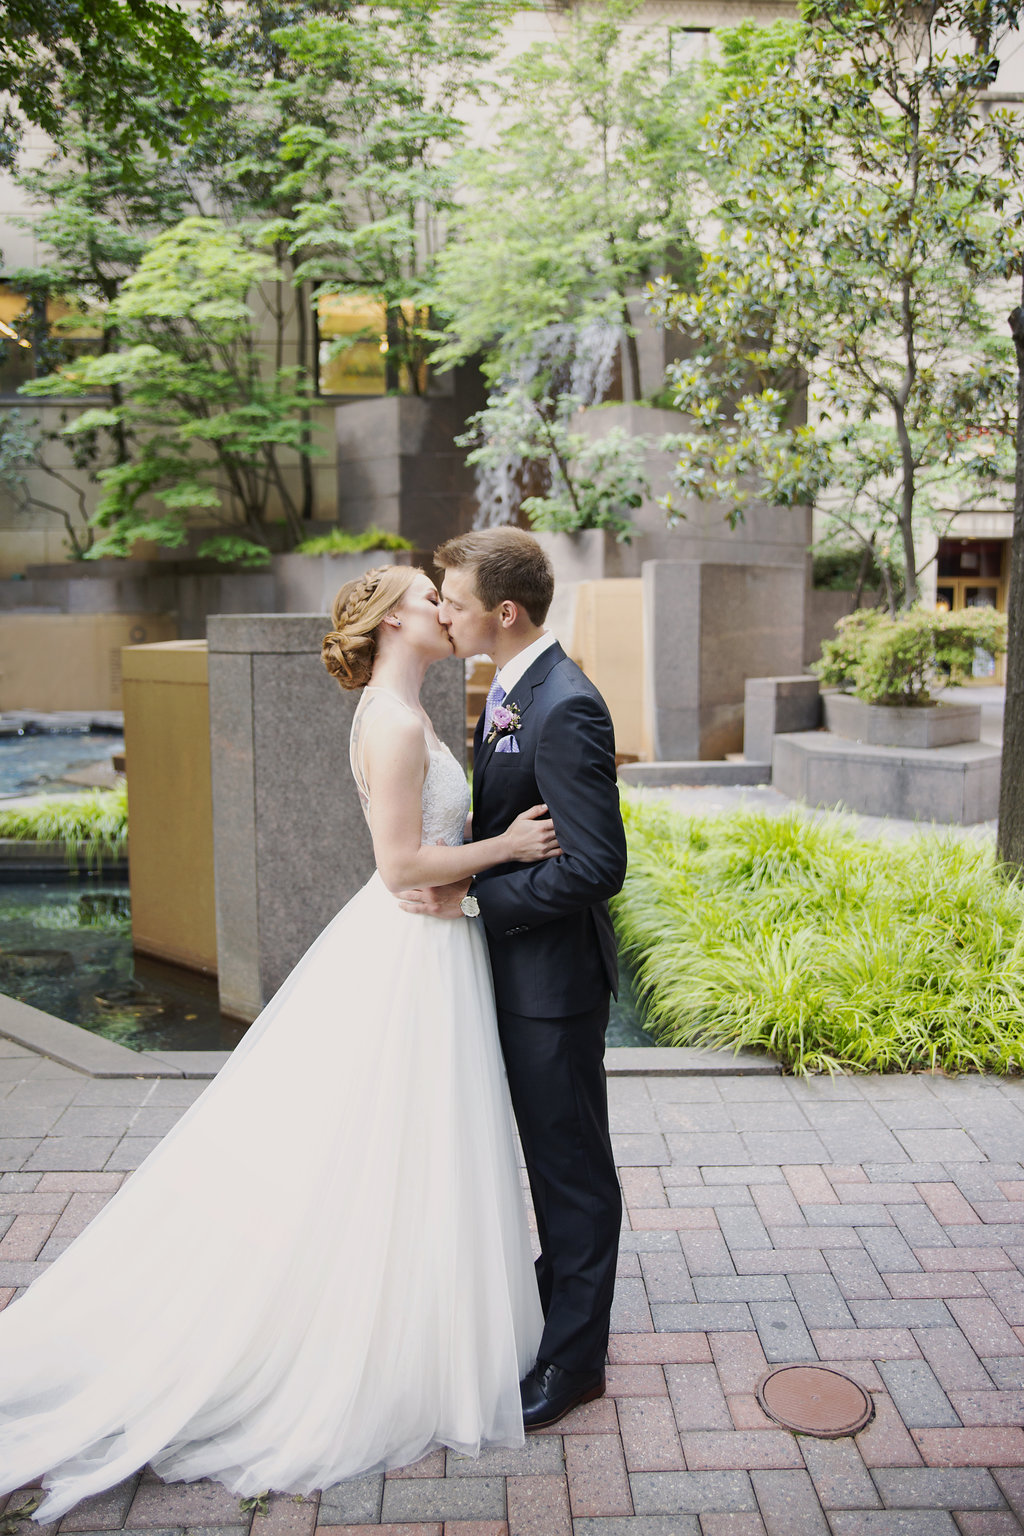 Bride and groom kiss in Uptown Charlotte before their wedding coordinated by Magnificent Moments Weddings